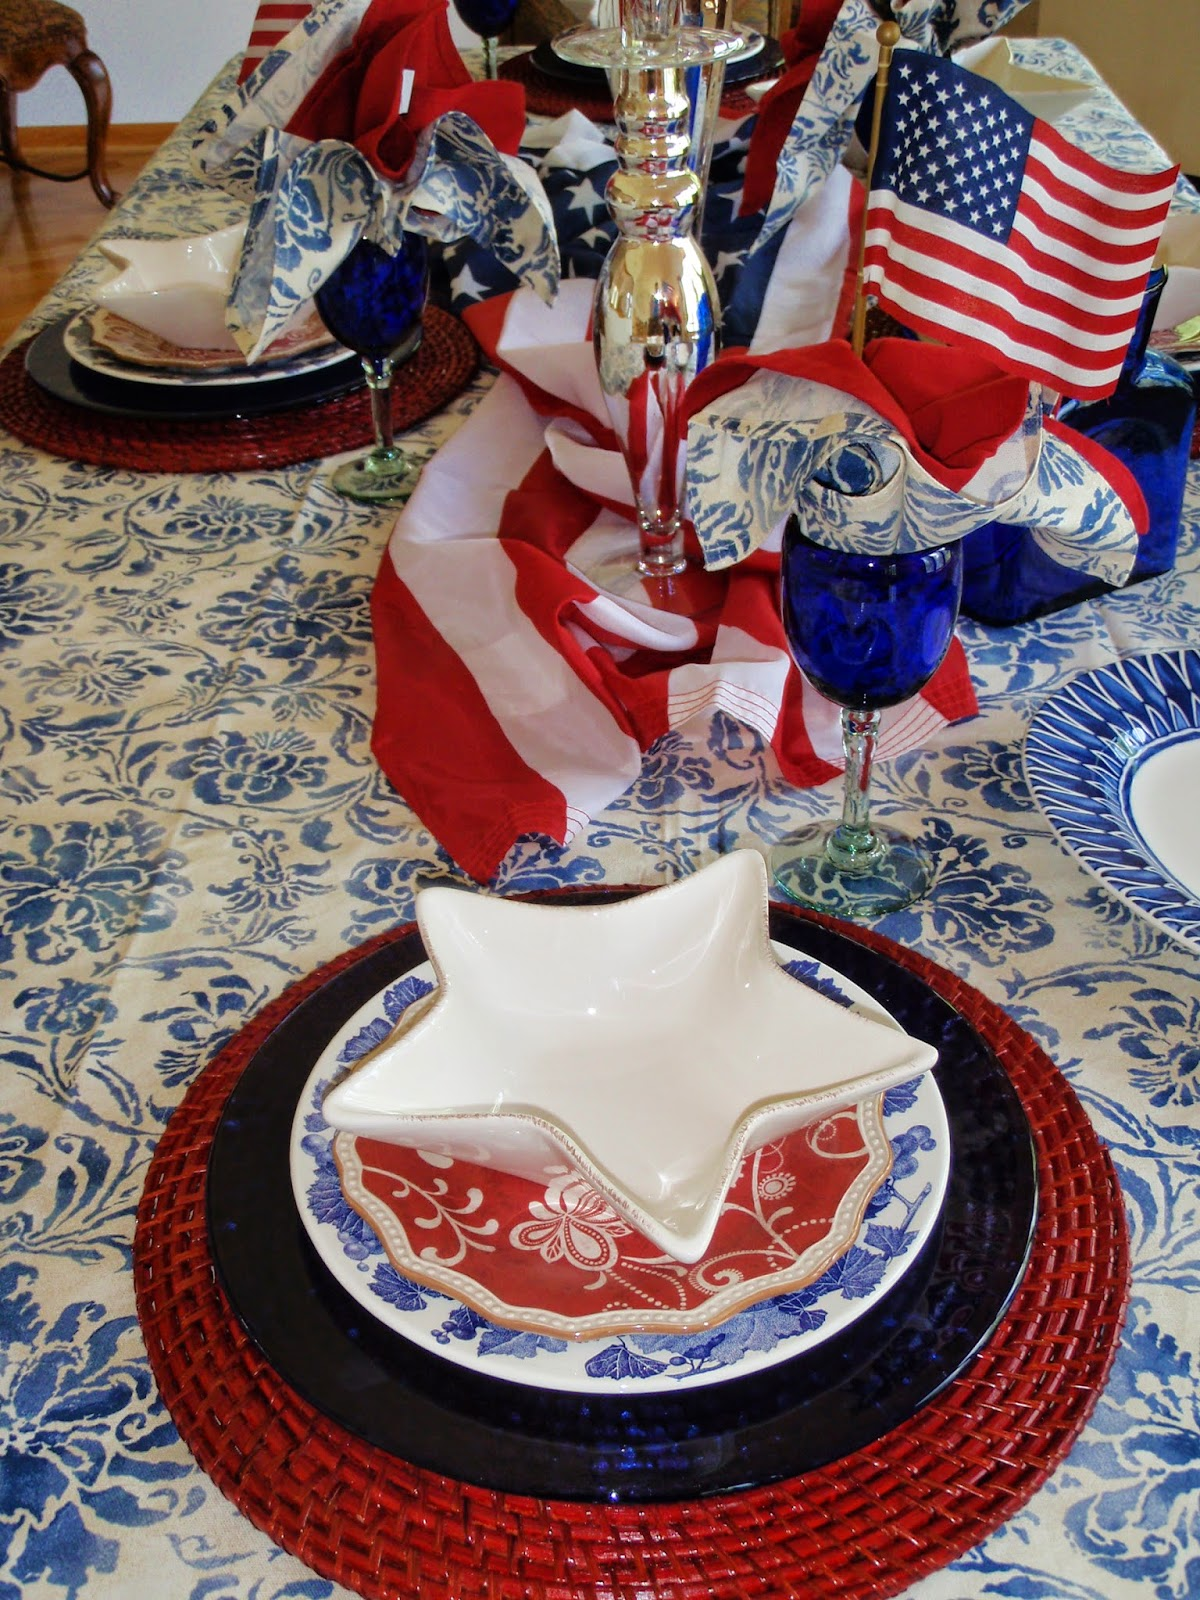 Pier One place mats cobalt blue glass chargers of unknown origin Williams Sonoma grape dinner plates Pier One bandanna salad plate all topped with white ... & A Graceful Table: 4th of July party on Eagle\u0027s Nest Lake